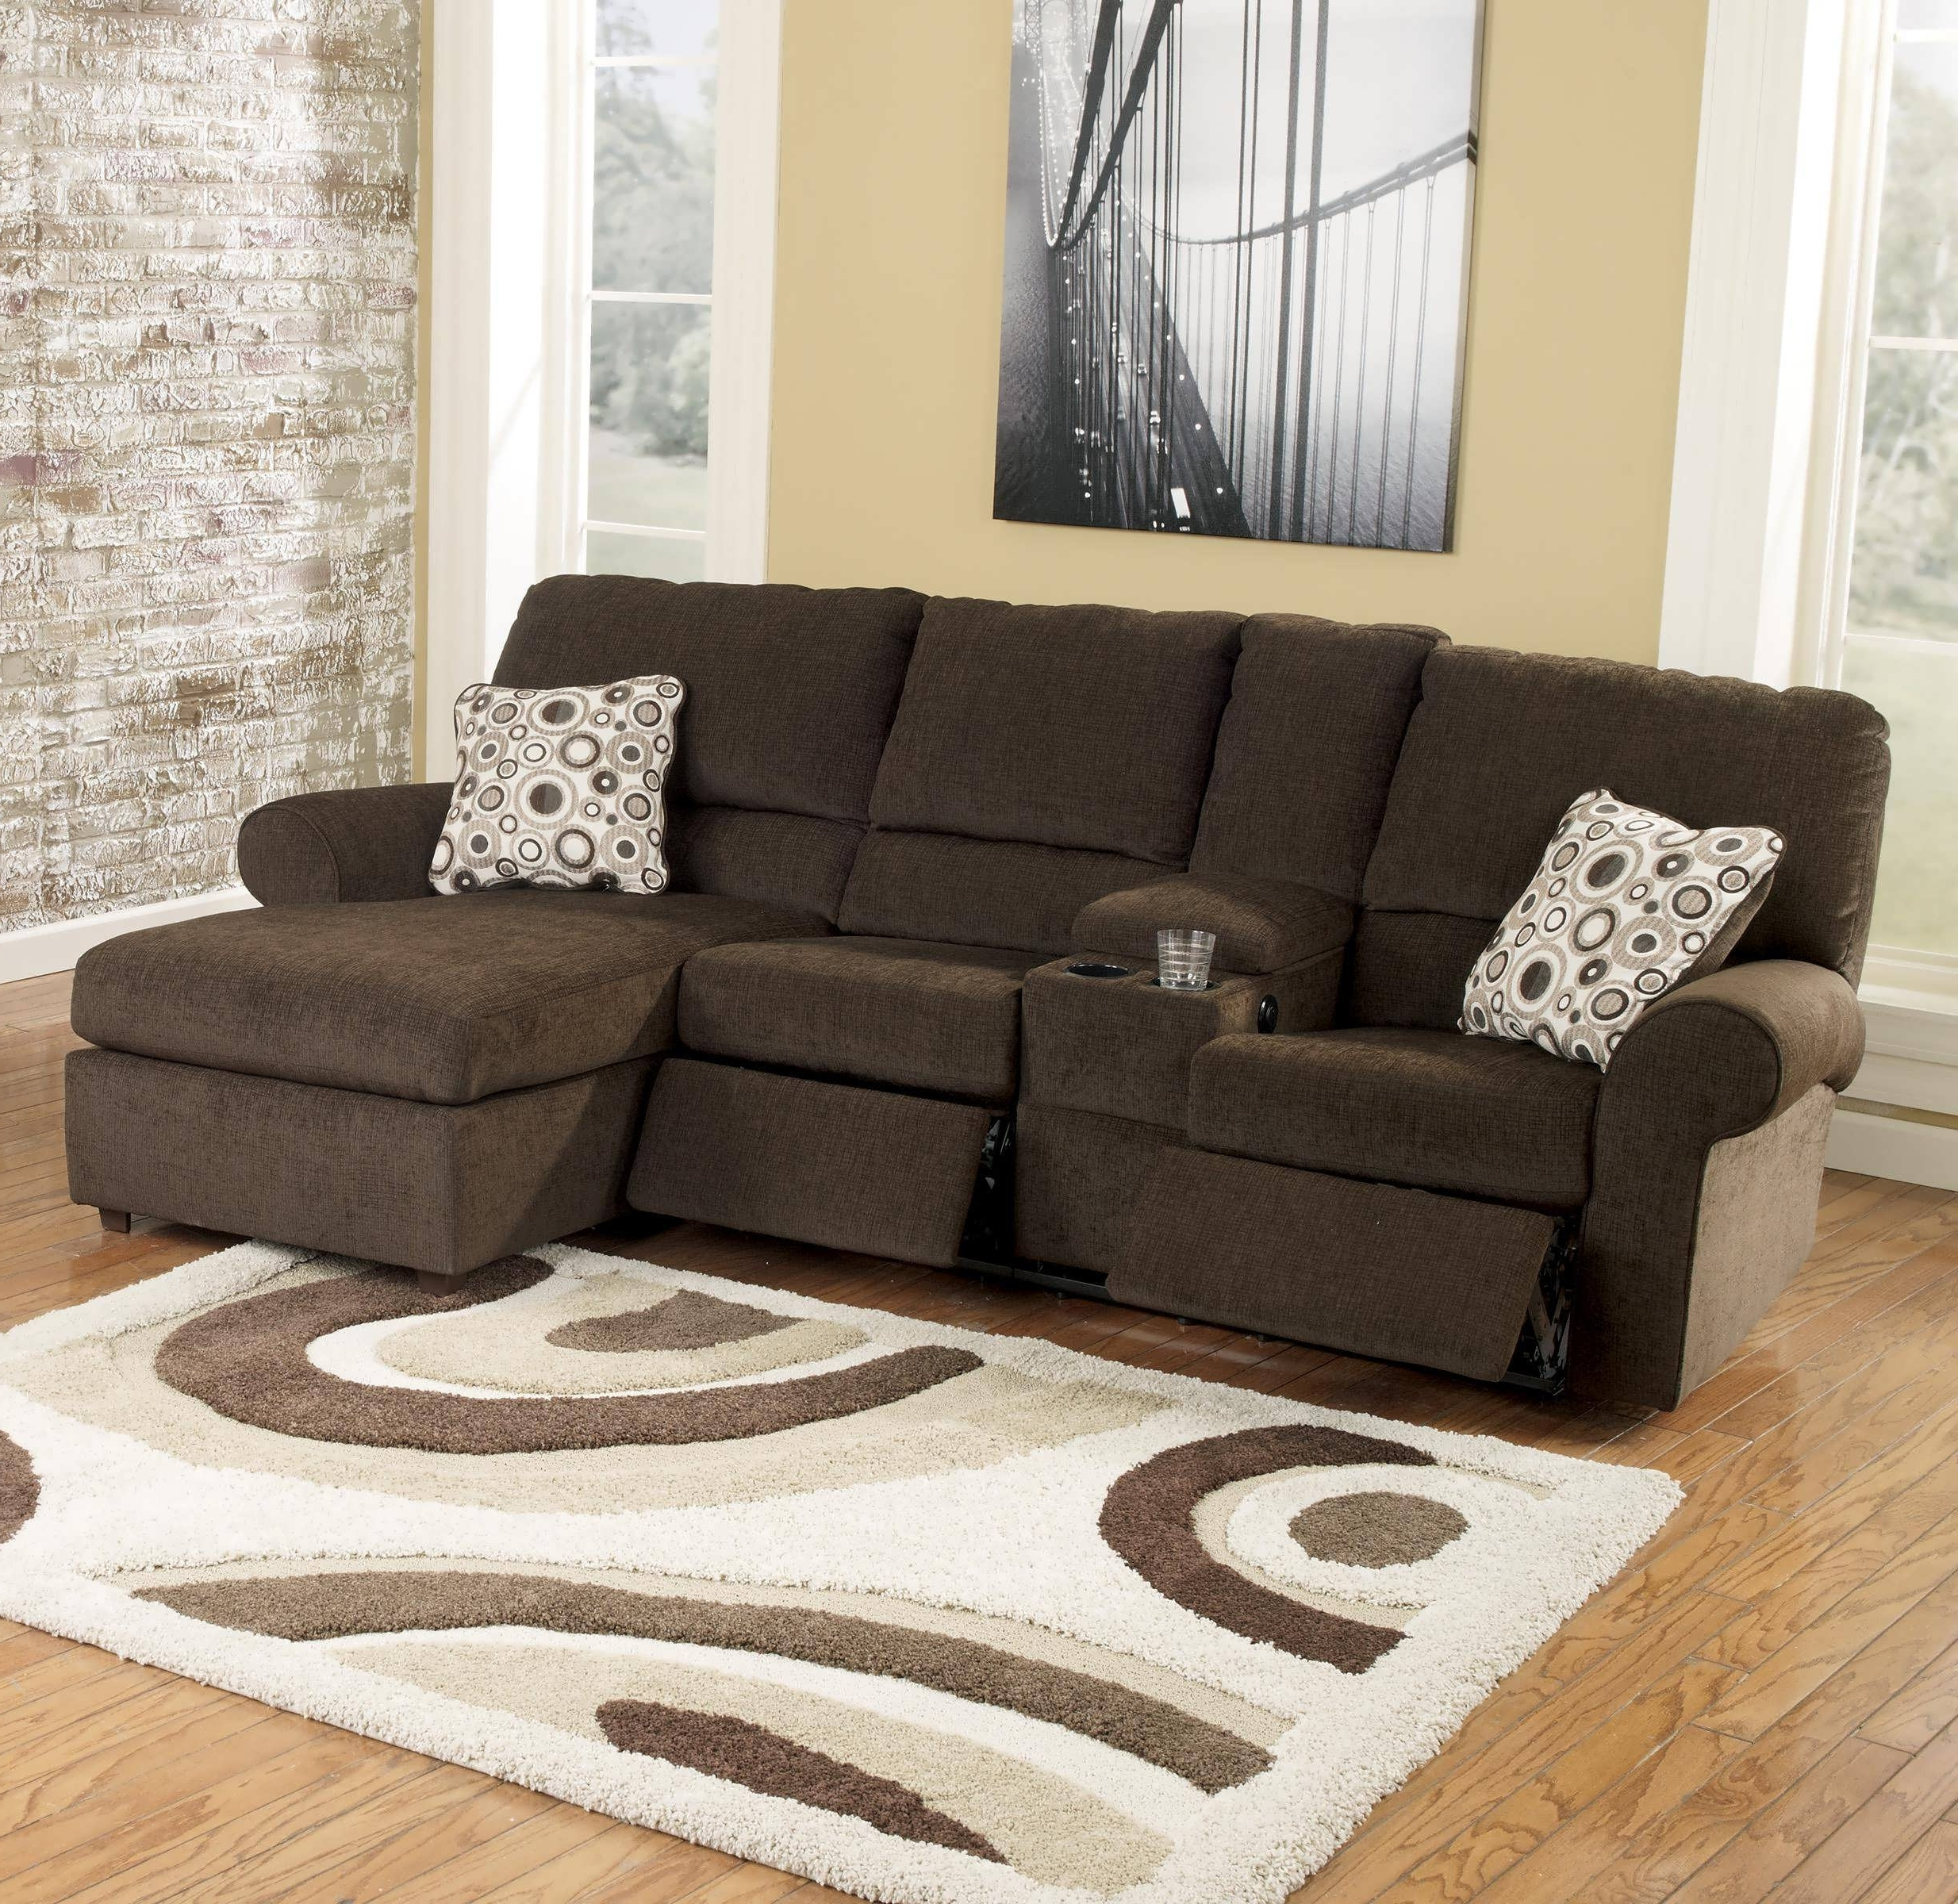 Double Chaise Sectionals With Regard To 2017 Sofa : Leather Sectionals For Sale Double Chaise Sectional Wrap (View 7 of 15)